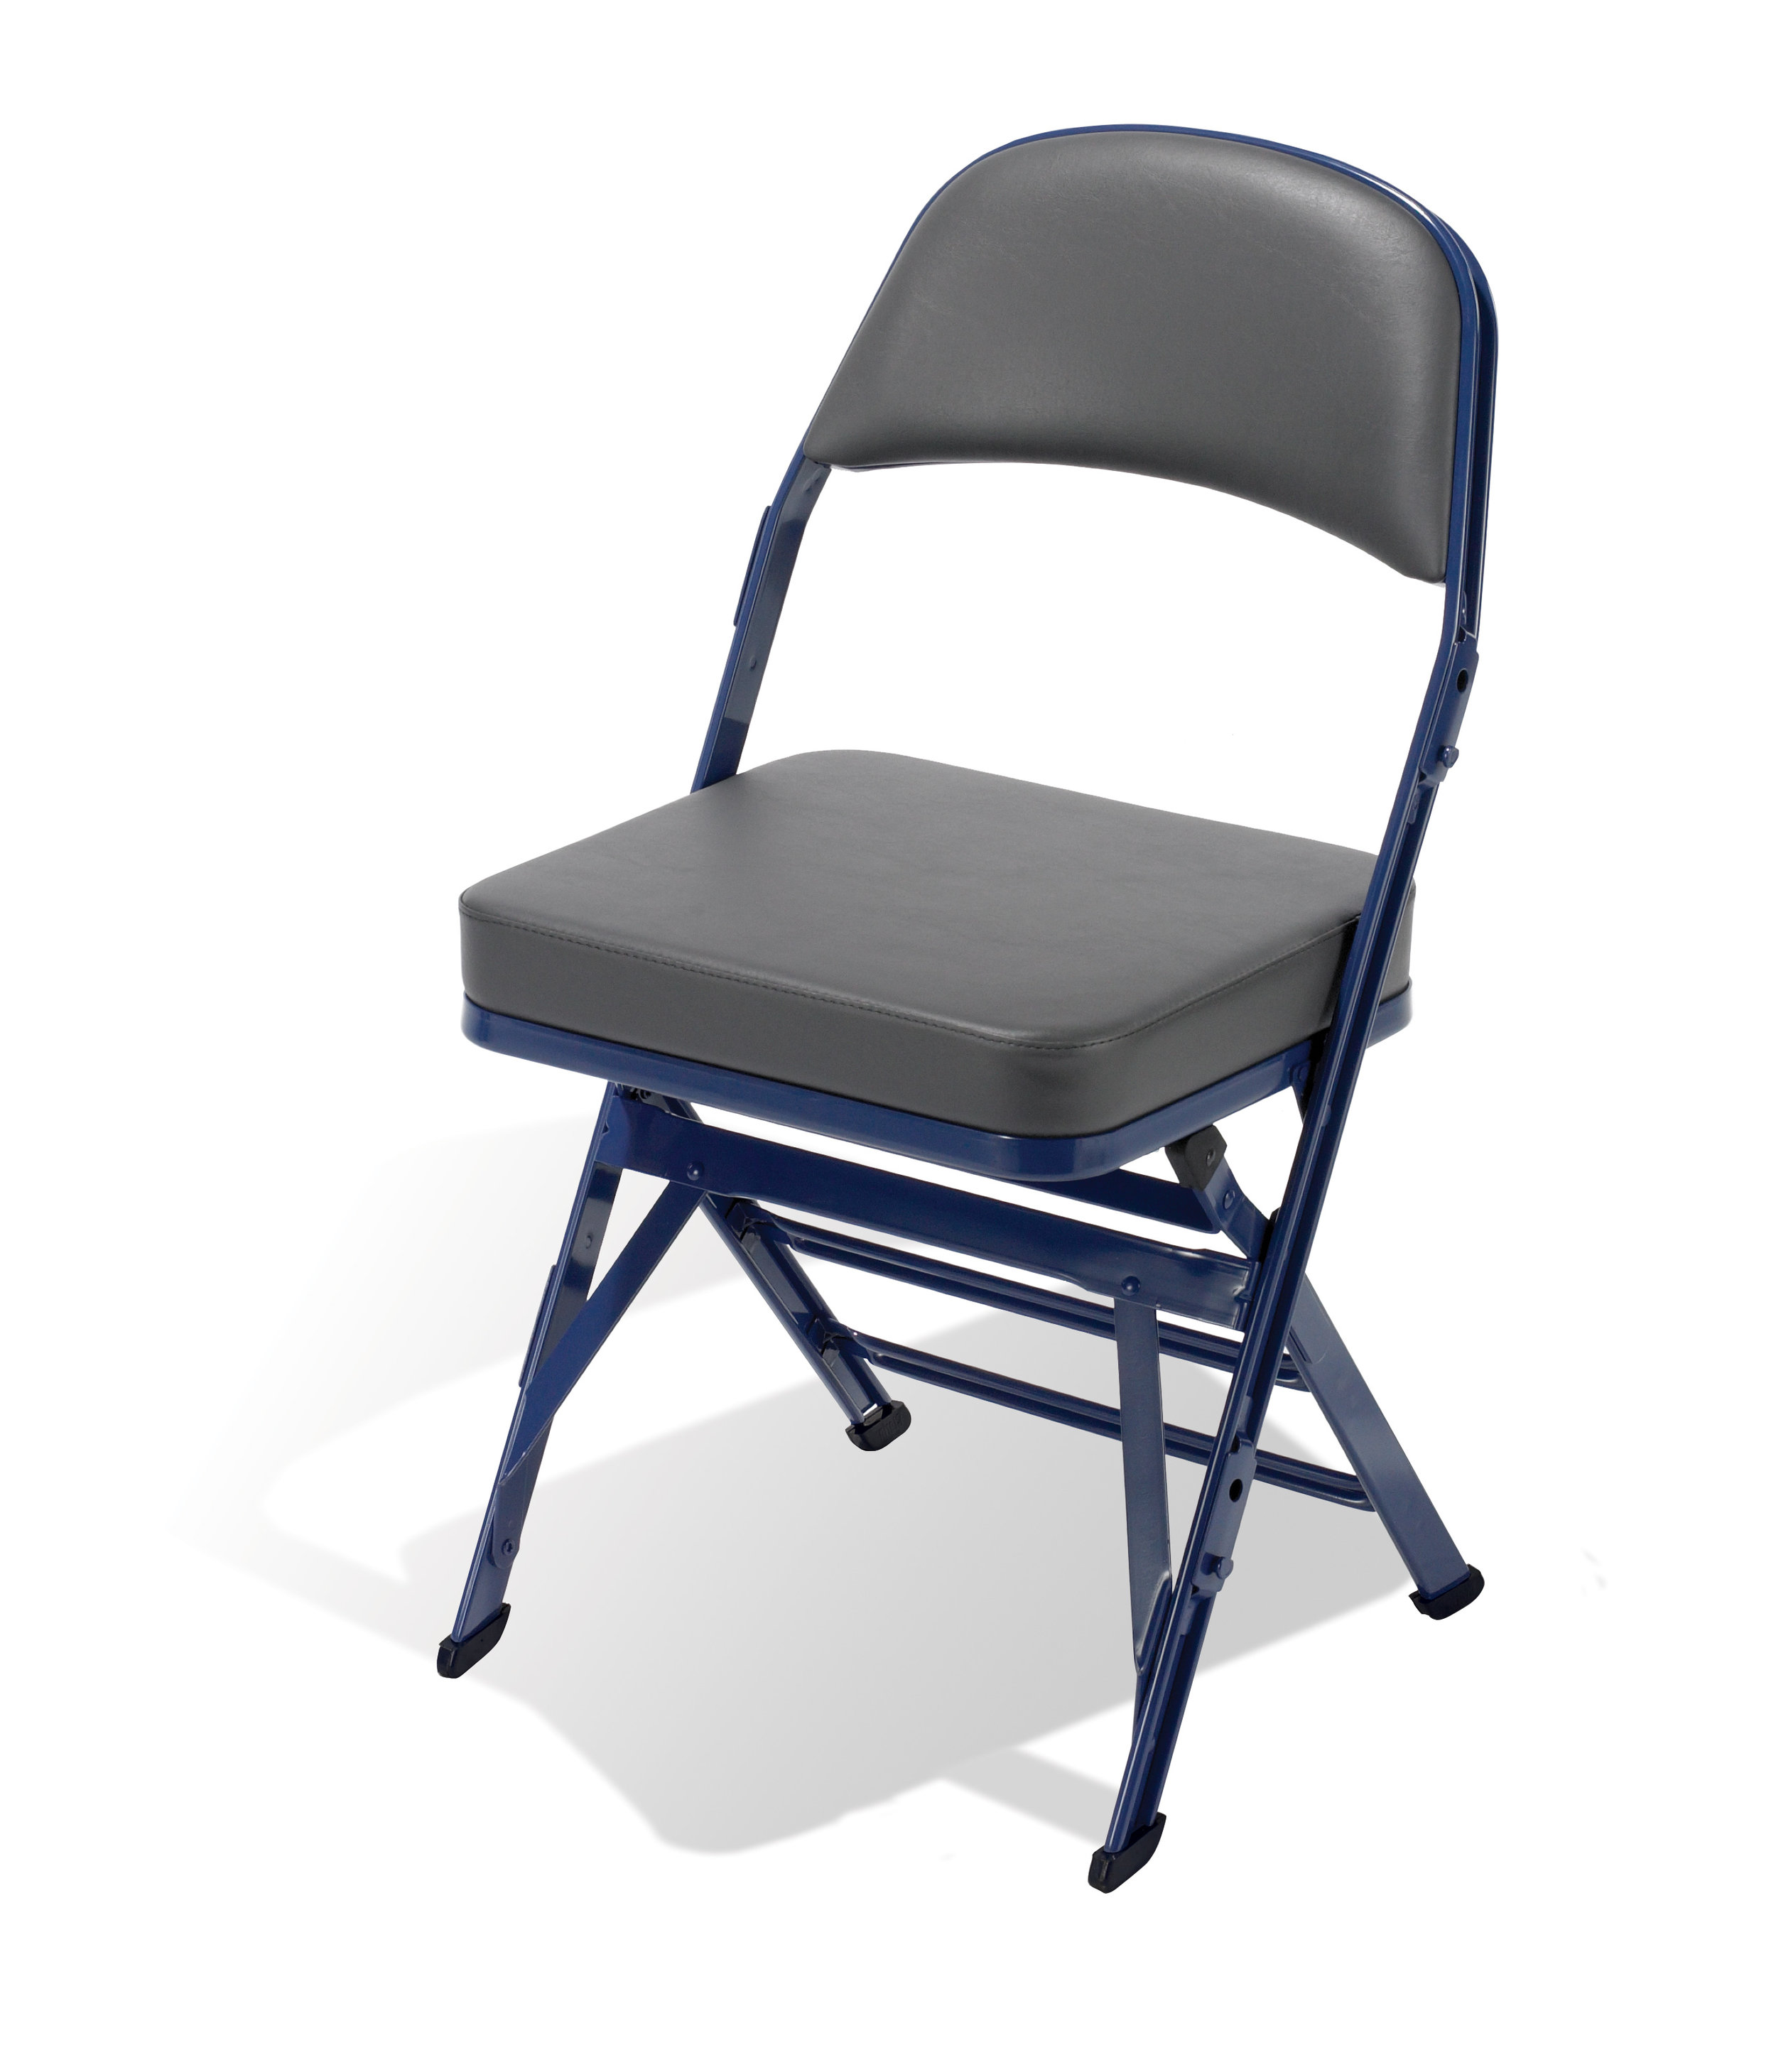 high folding chair acrylic dining chairs nz 4400 portable for any venue clarin seating the most popular arenas that require capacity model features a thicker padded seat to keep spectators in